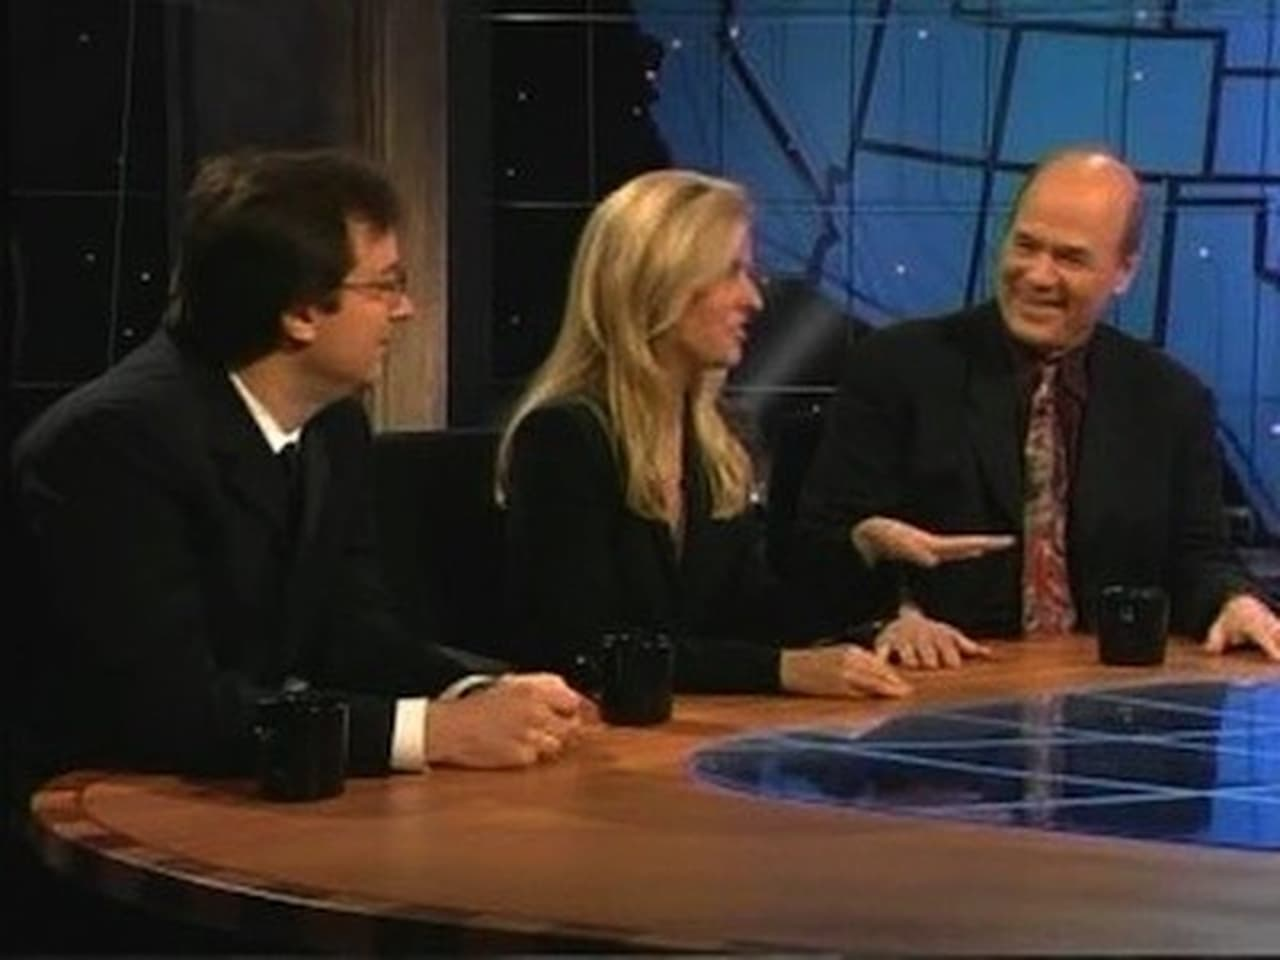 Real Time with Bill Maher - Season 1 Episode 2 : February 28, 2003